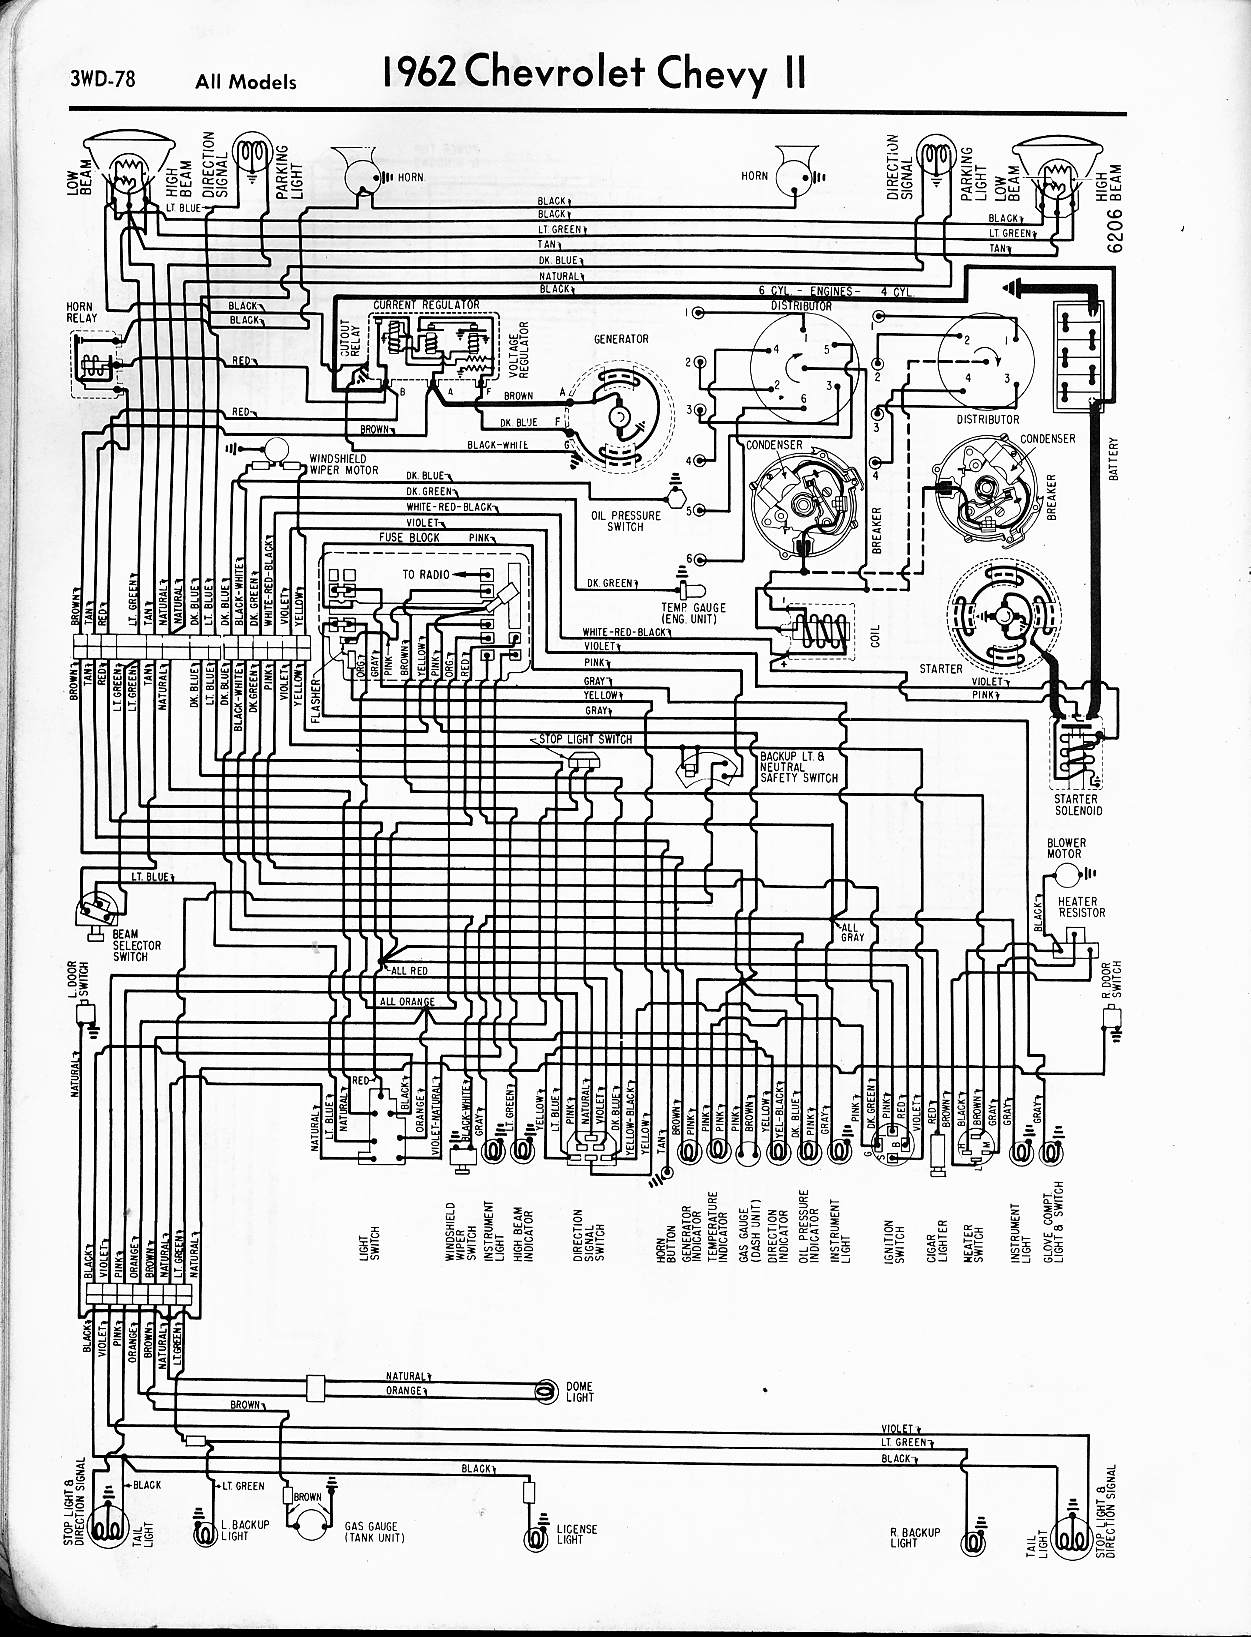 MWireChev62_3WD 078 57 65 chevy wiring diagrams Chevy Wiring Harness Diagram at edmiracle.co